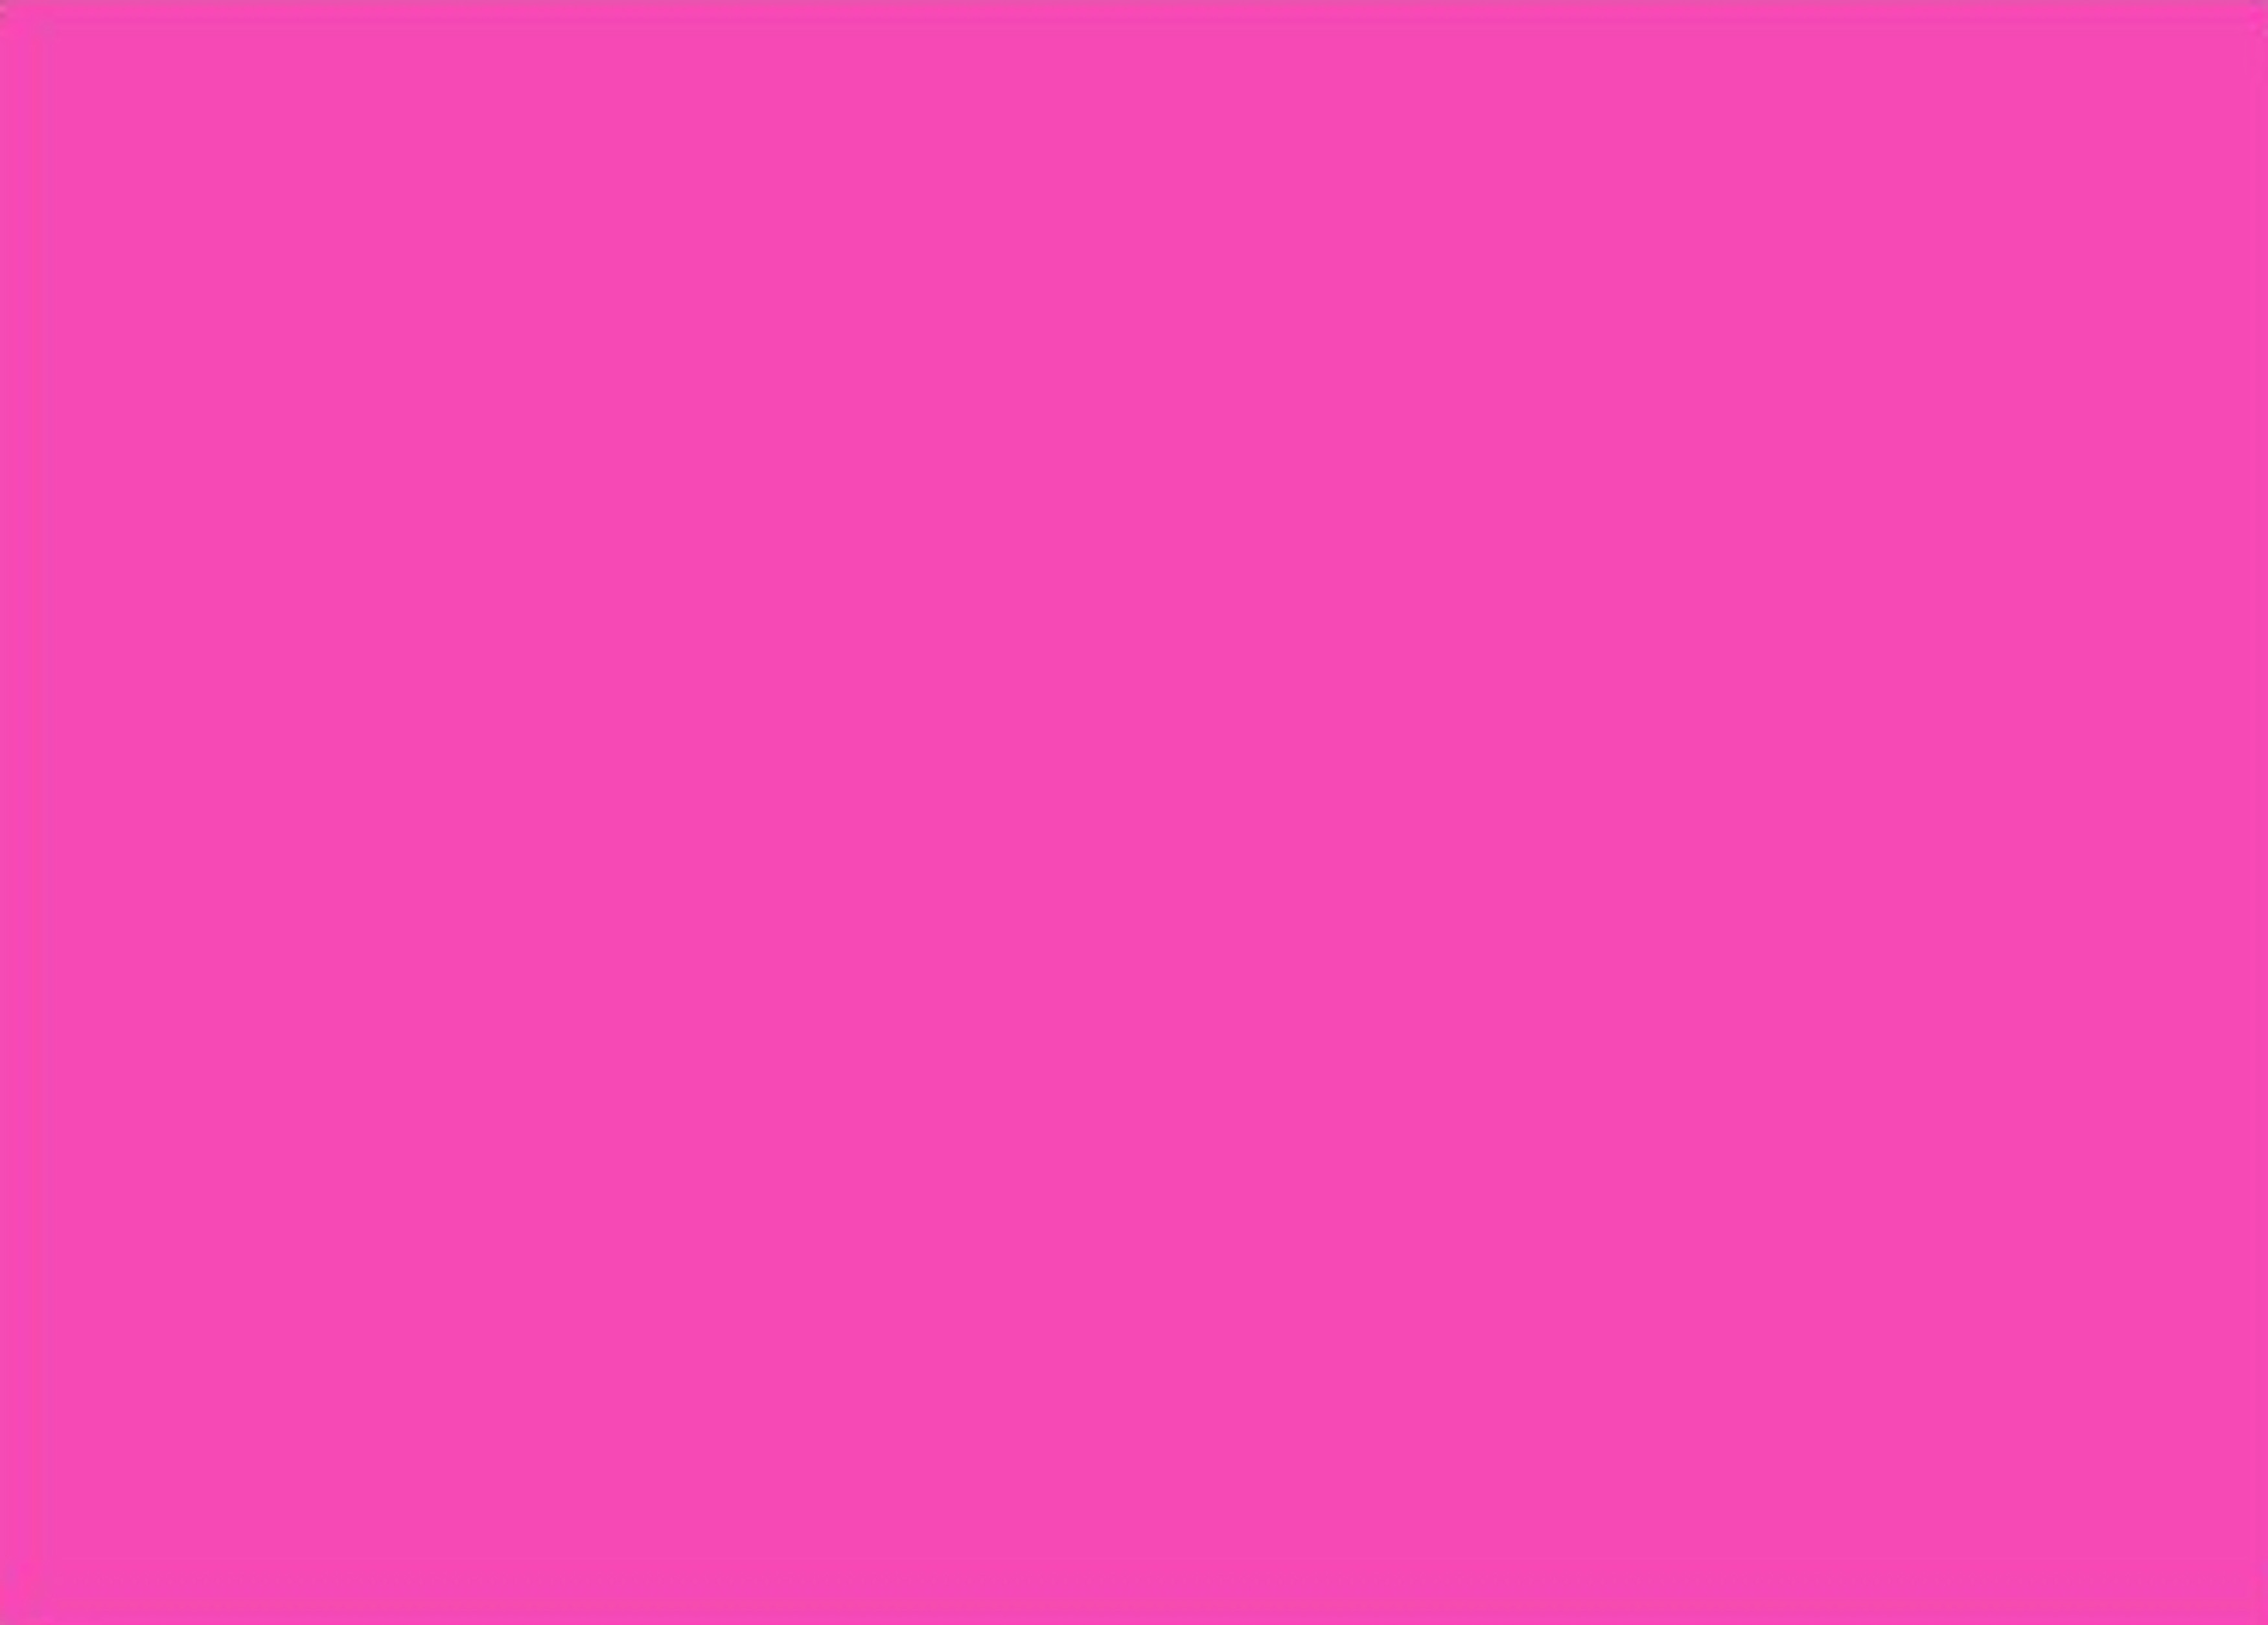 Plain Wallpaper Image Pink 13832 Wallpaper Walldiskpaper